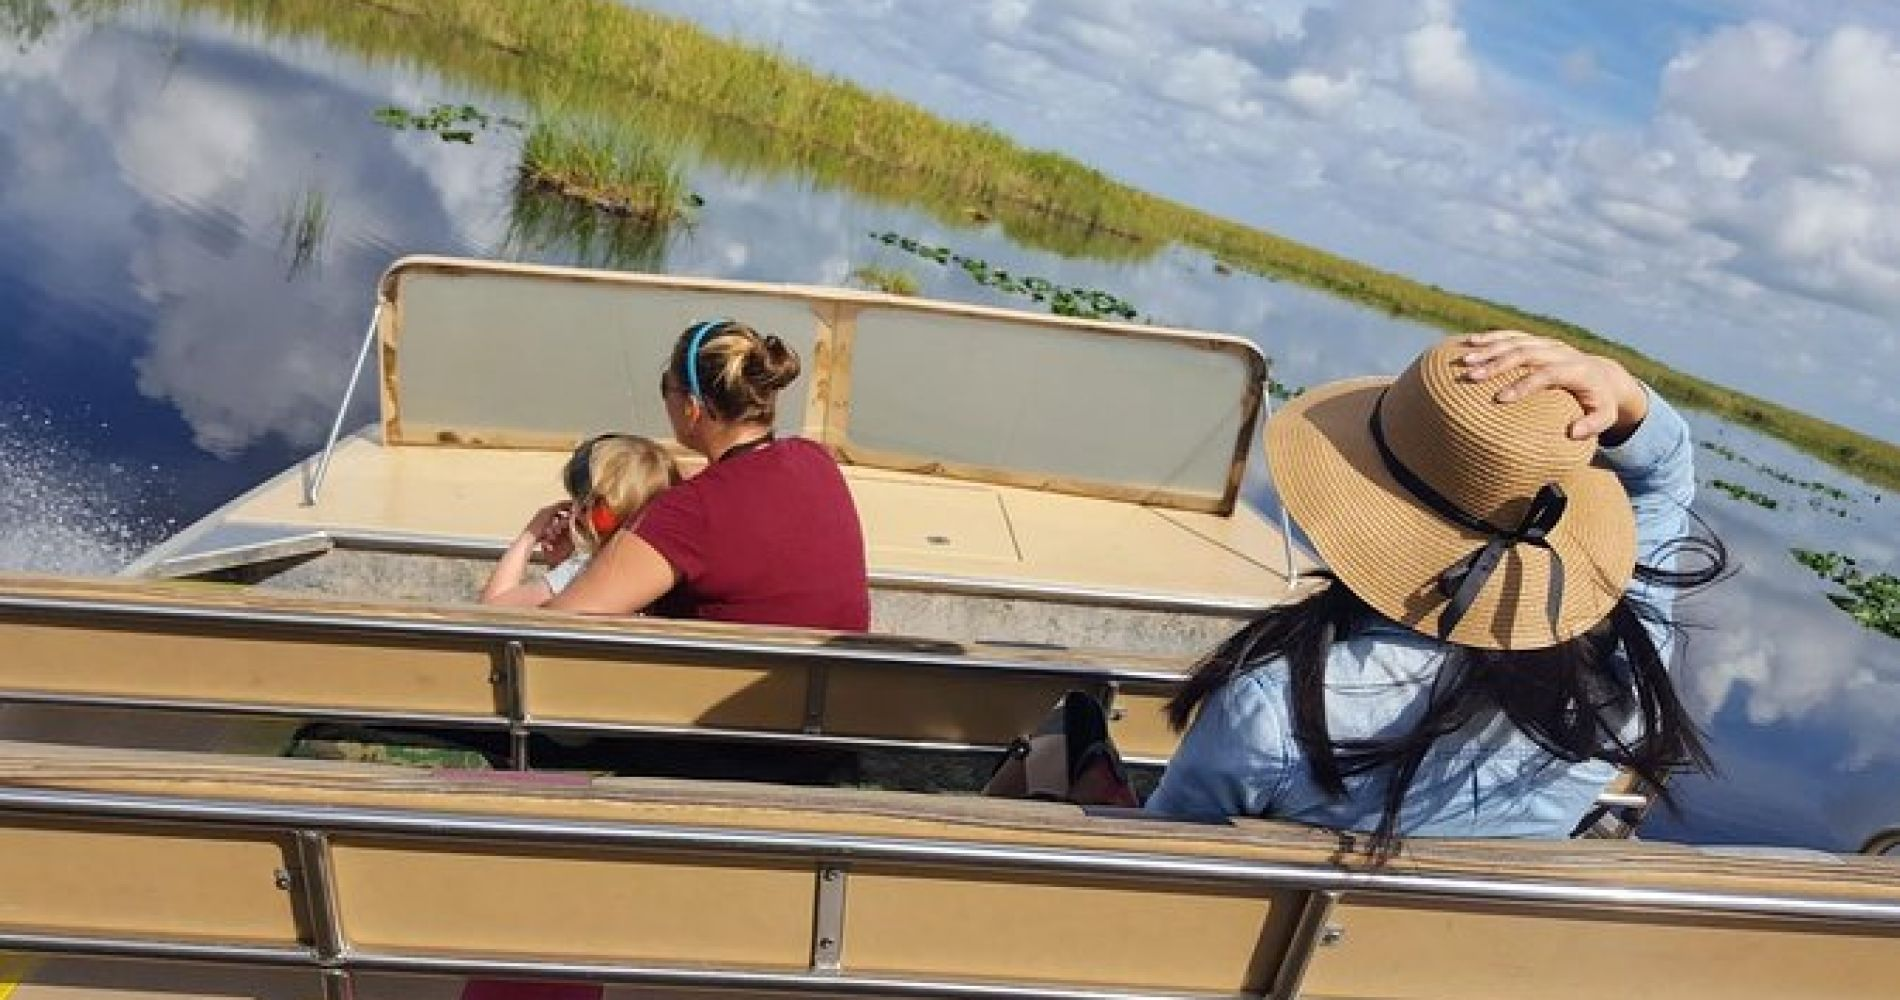 Everglades Nature Tour by Cruise, Hike, and Airboat with Lunch